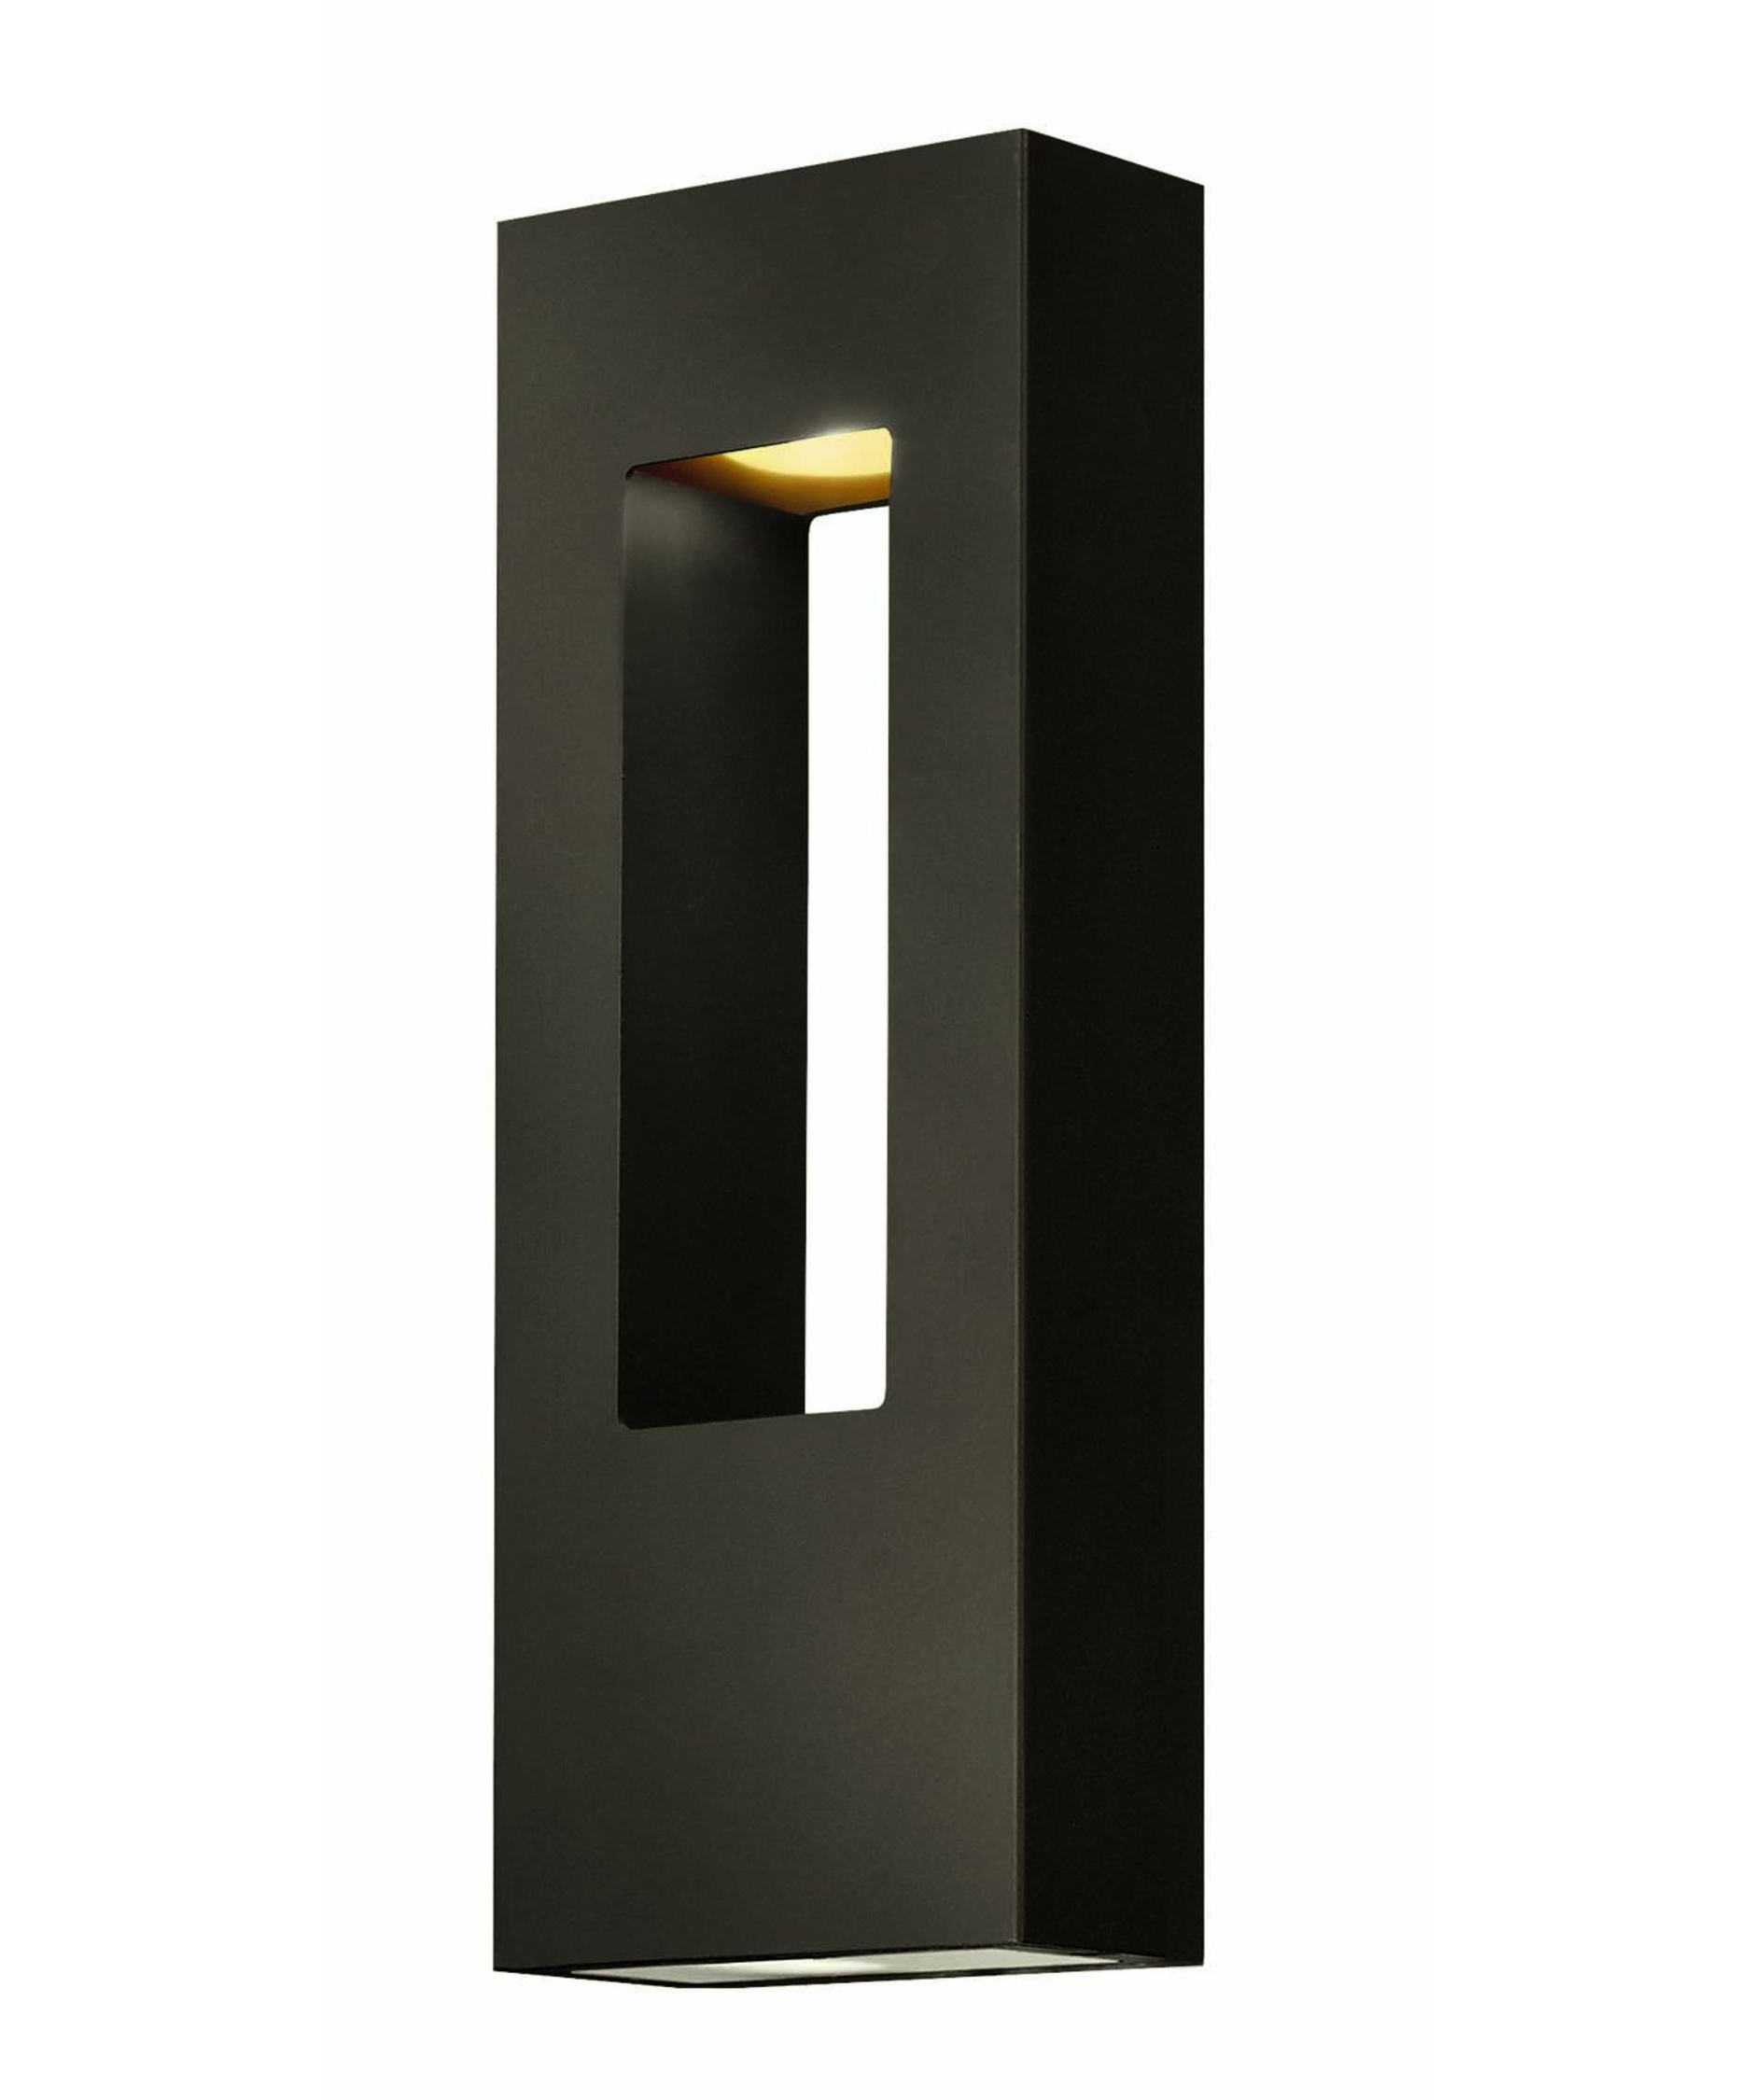 Most Popular Modern Outdoor Hinkley Lighting With Regard To Hinkley Lighting 1648 Atlantis 2 Light Outdoor Wall Light (View 14 of 20)